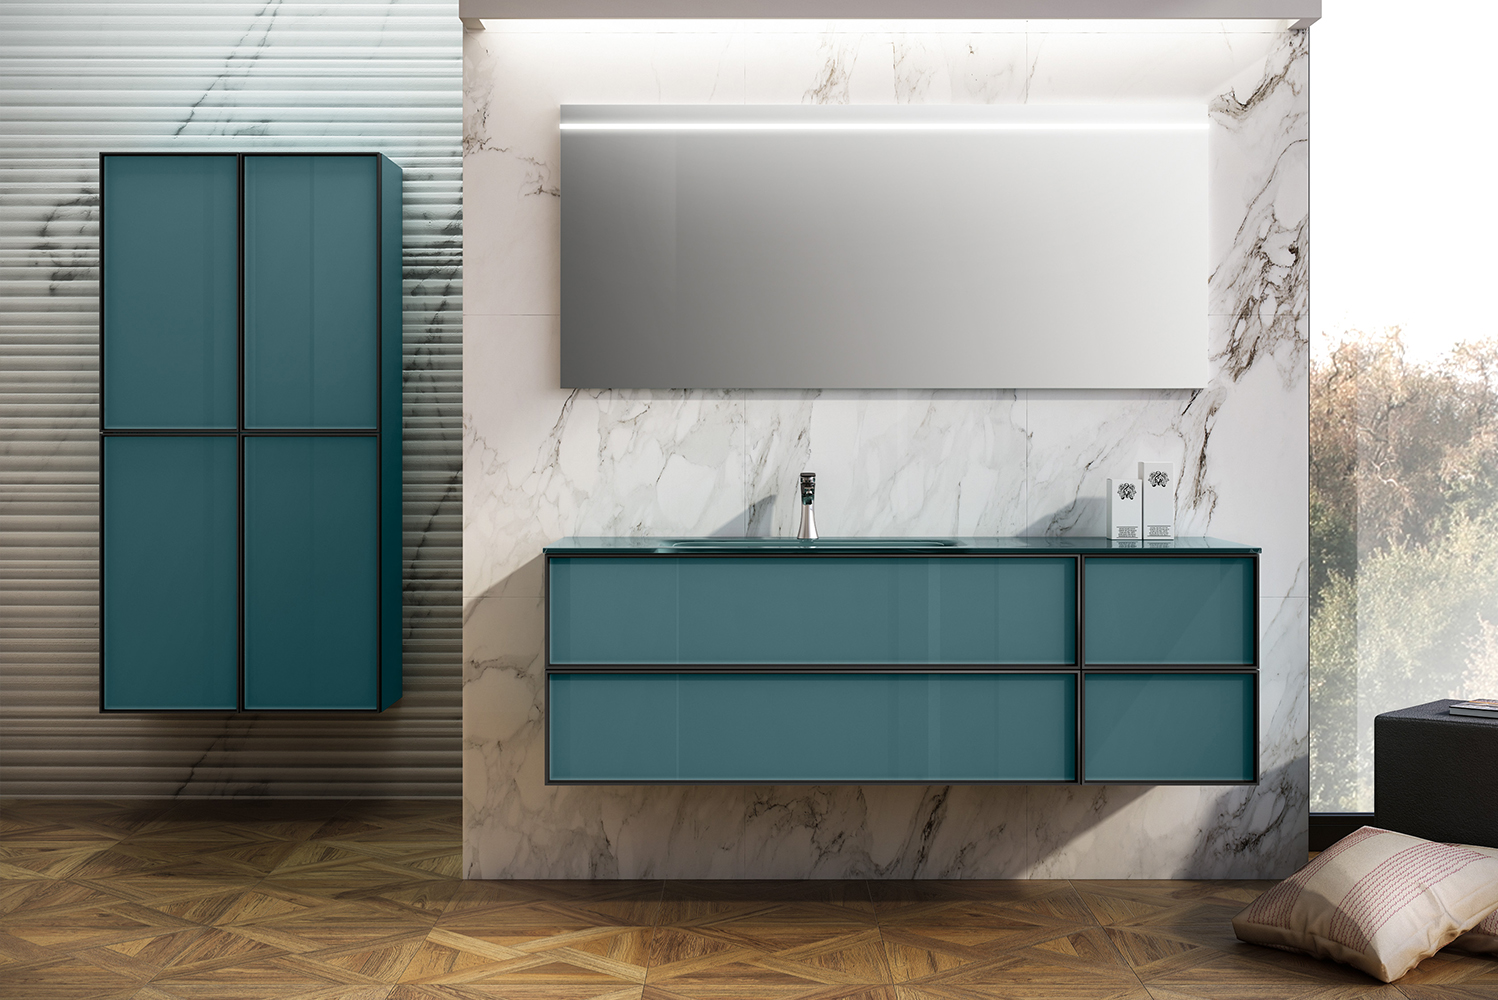 Coordinating mirrors and side cabinets are also available.